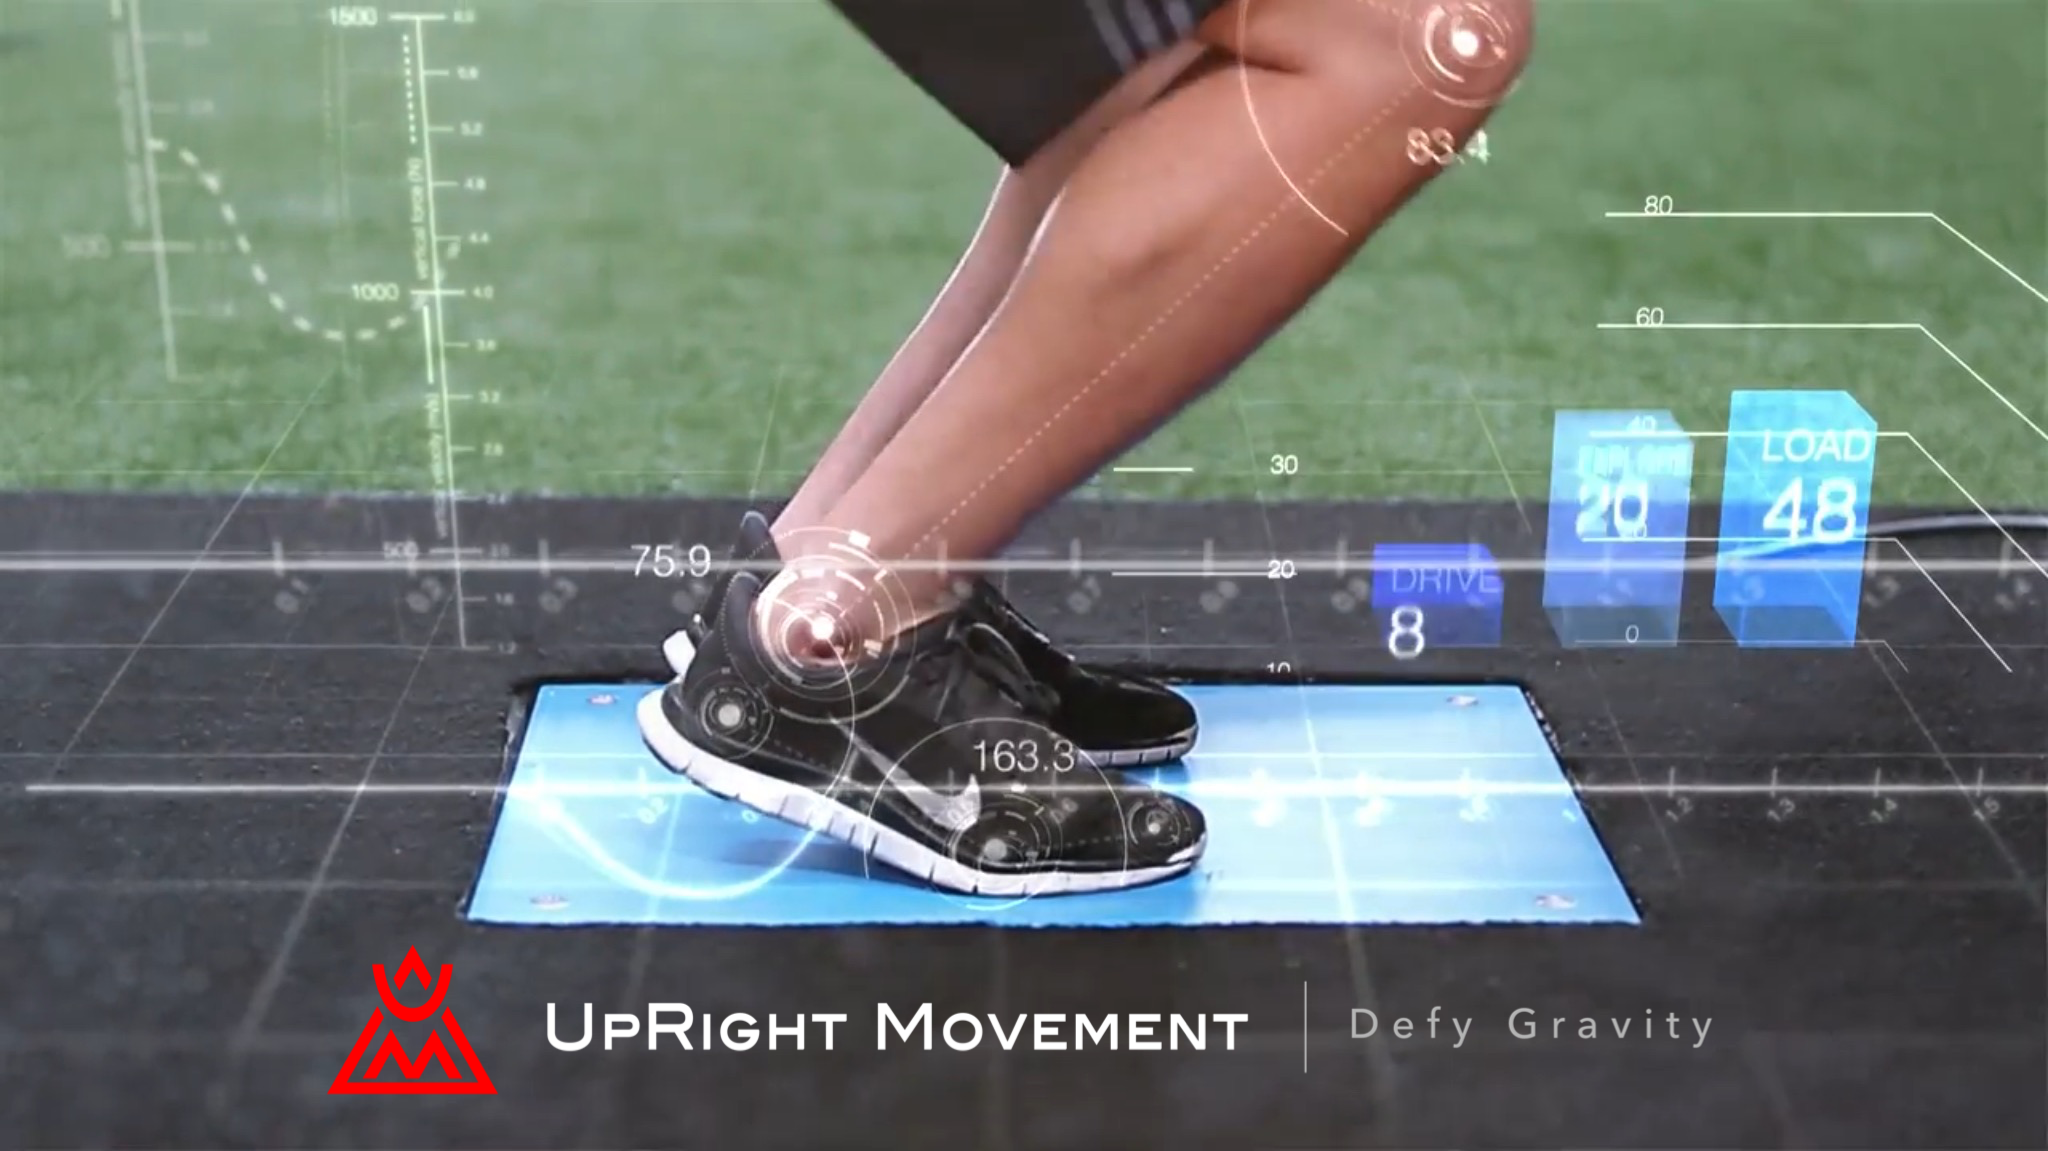 Movement Signature: Performance Testing and Training